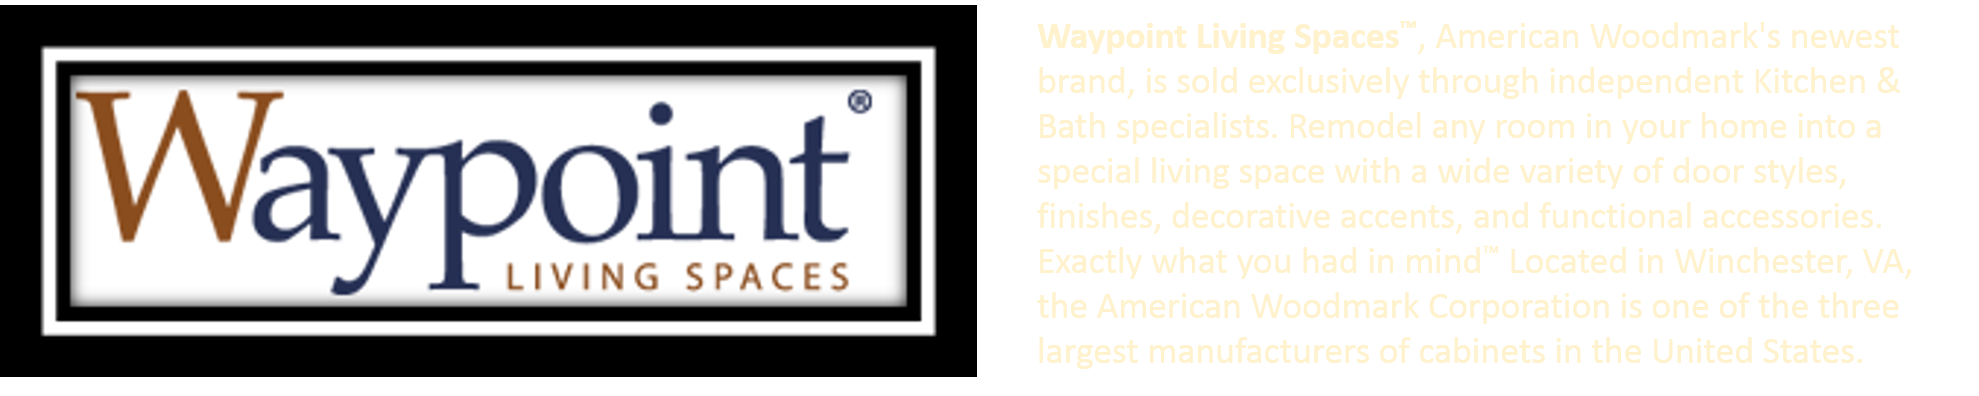 Waypoint Logo with Verbiage